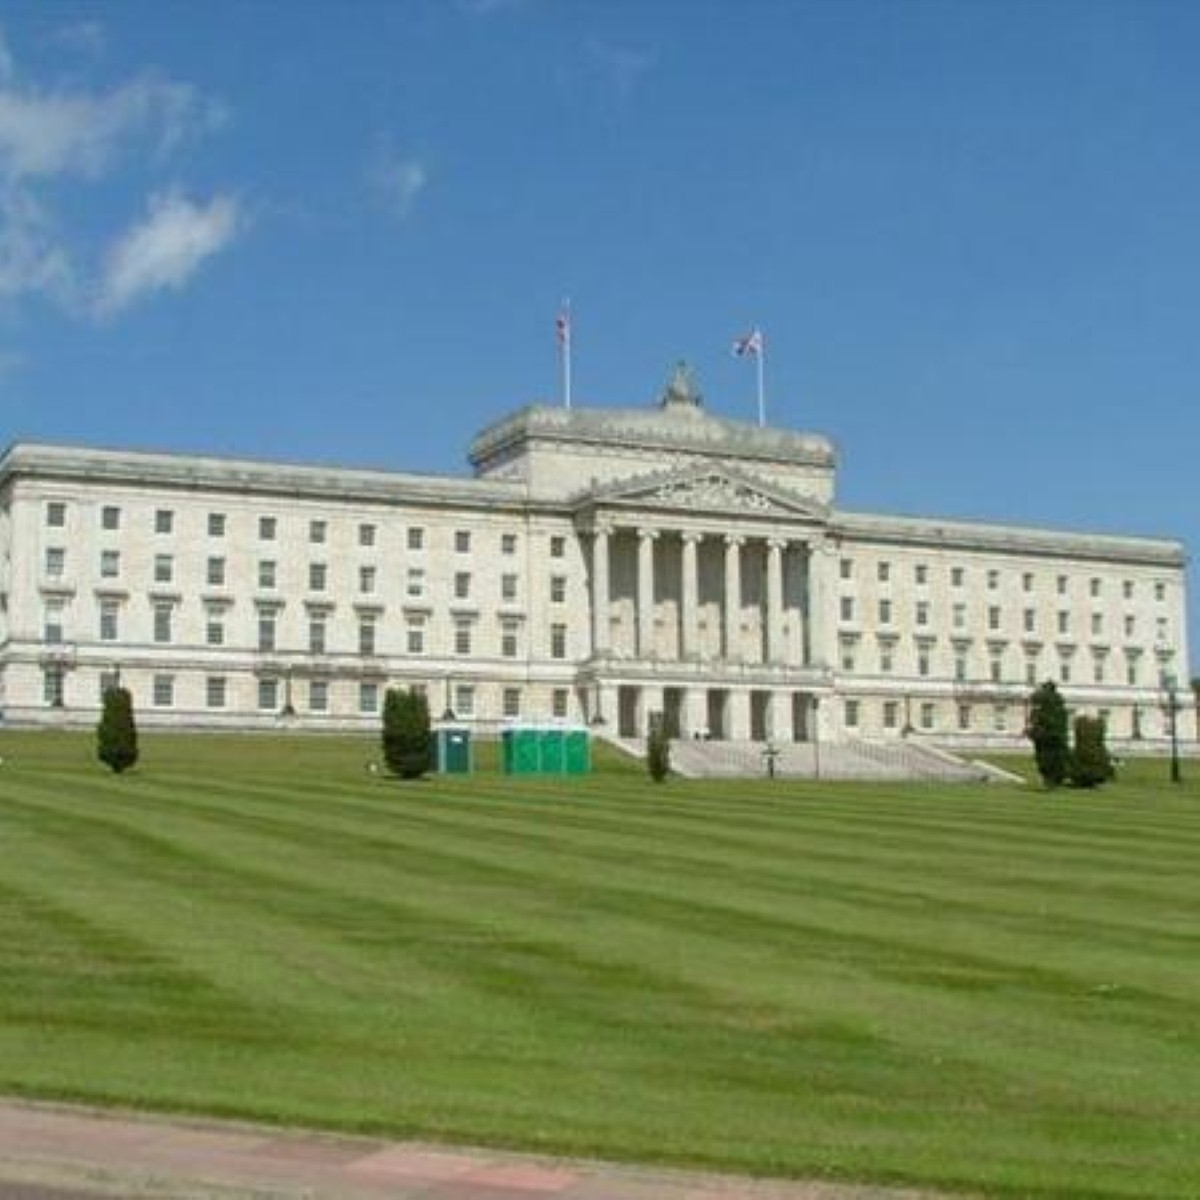 Complaints were made about the DUP MP's comments